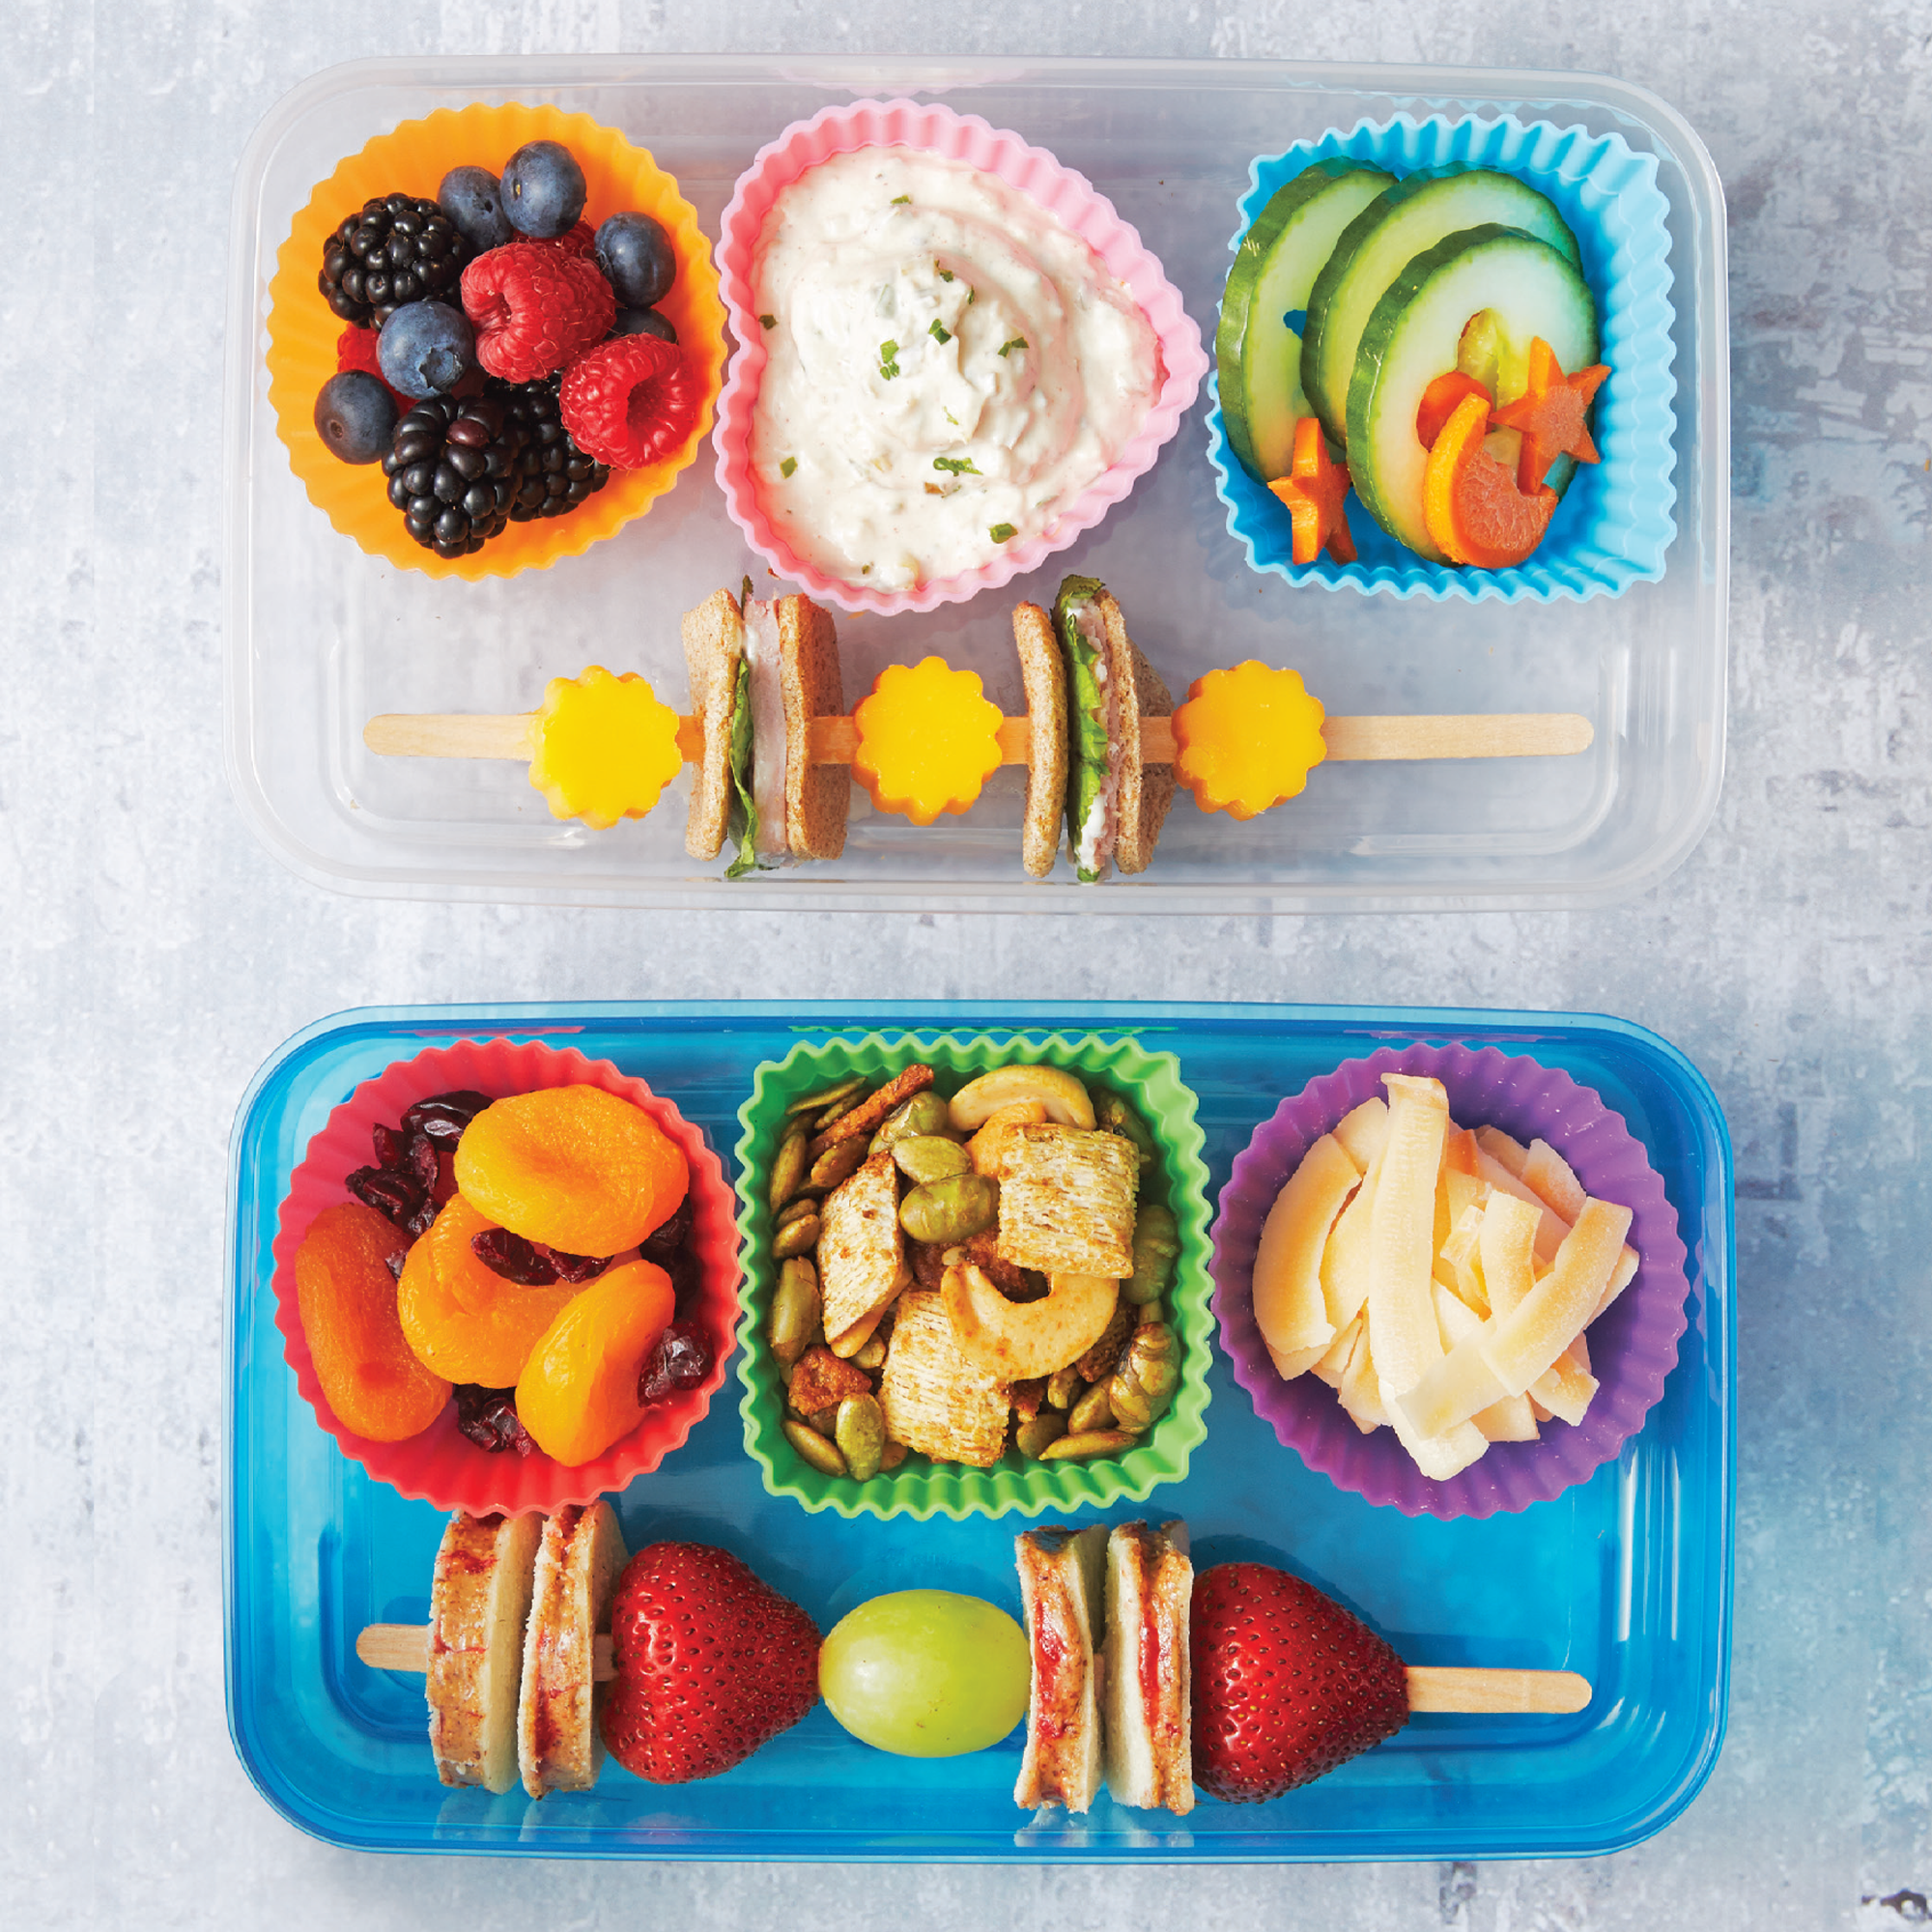 These Creative Bento Box Lunches Will Make Your Kid the Envy of the Cafeteria